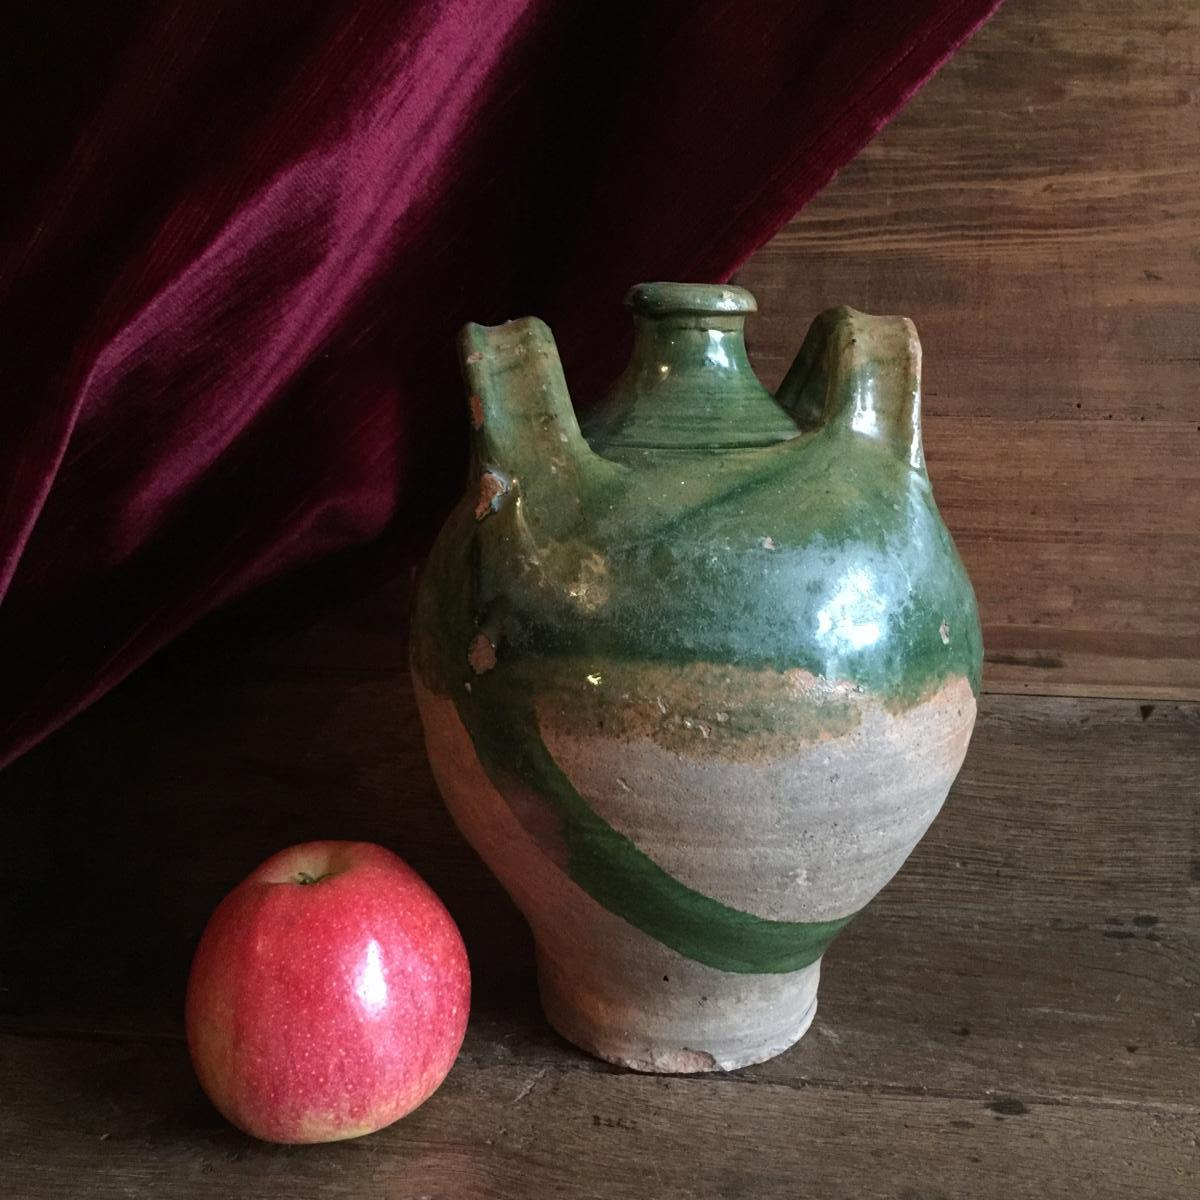 Brissard Jug Carboy Glazed Earthenware Valley Of Eure - French Folk Art Of Normandy XIXth